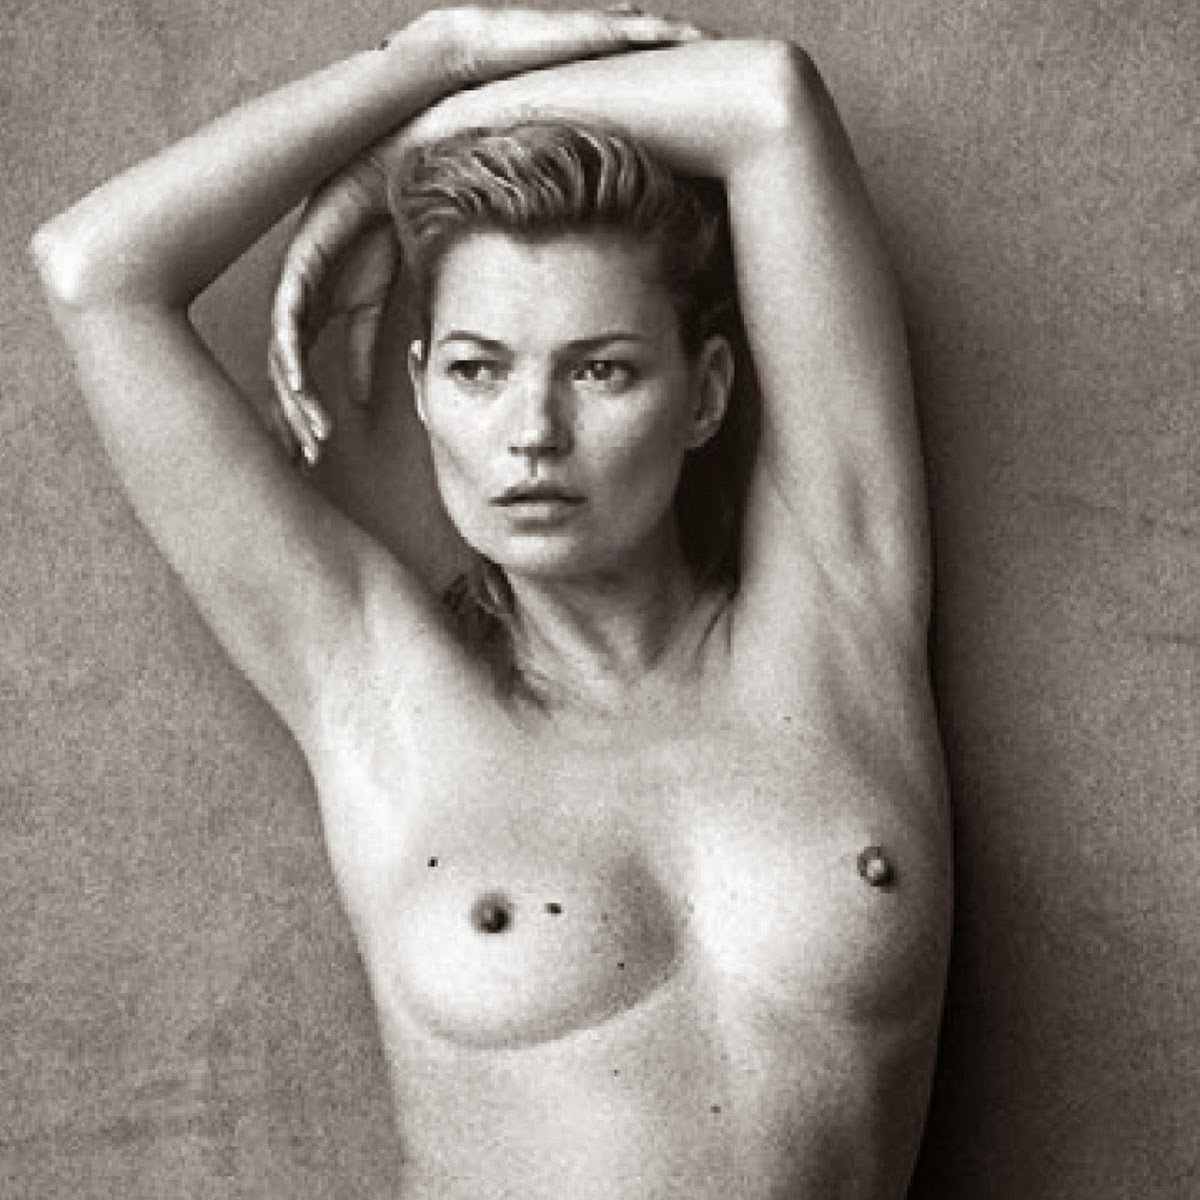 Moss topless kate